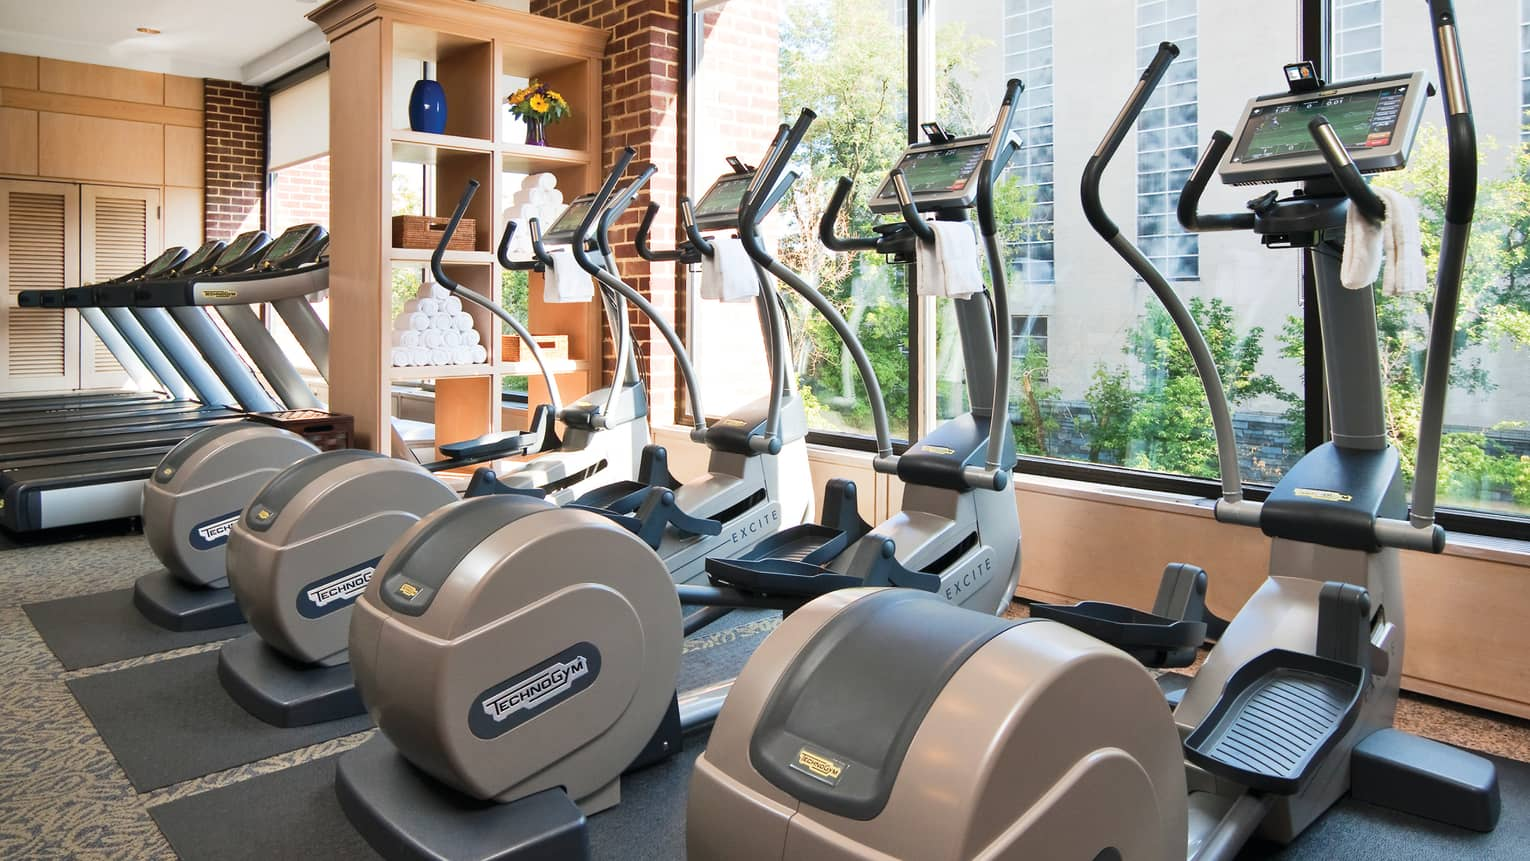 Row of cardio elliptical machines in front of sunny window in Fitness Centre